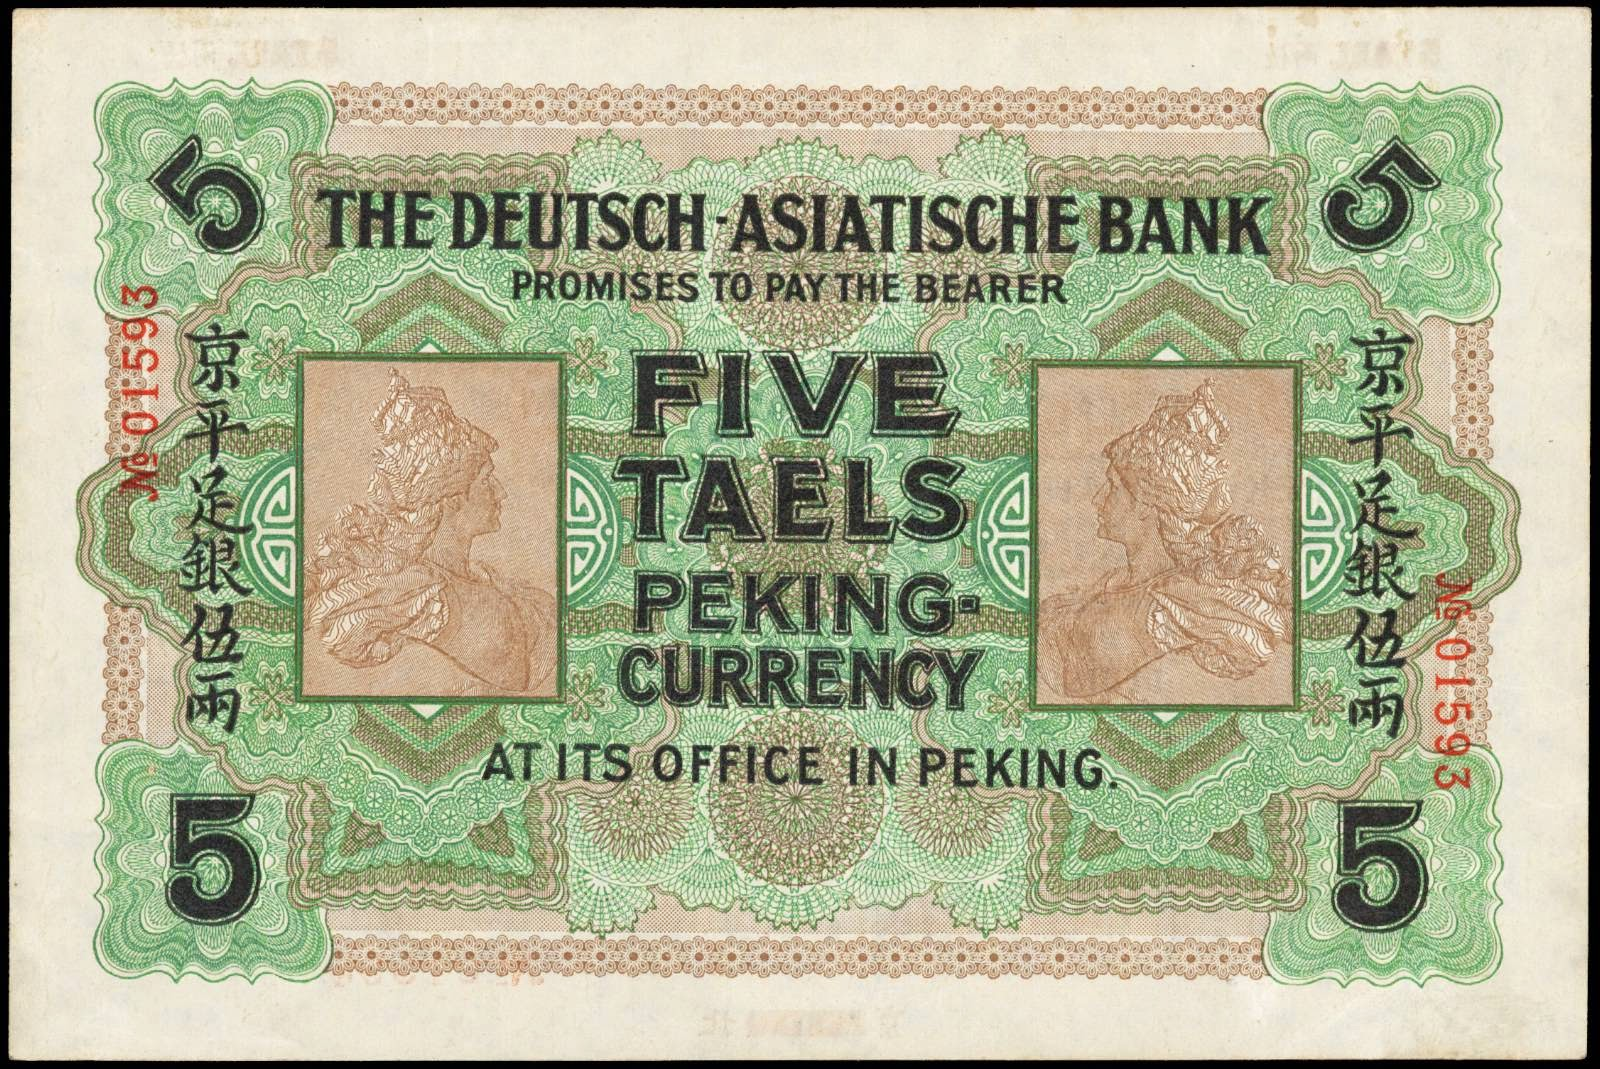 China Foreign Banks Duetsch Asiatische Bank 5 Taels banknote